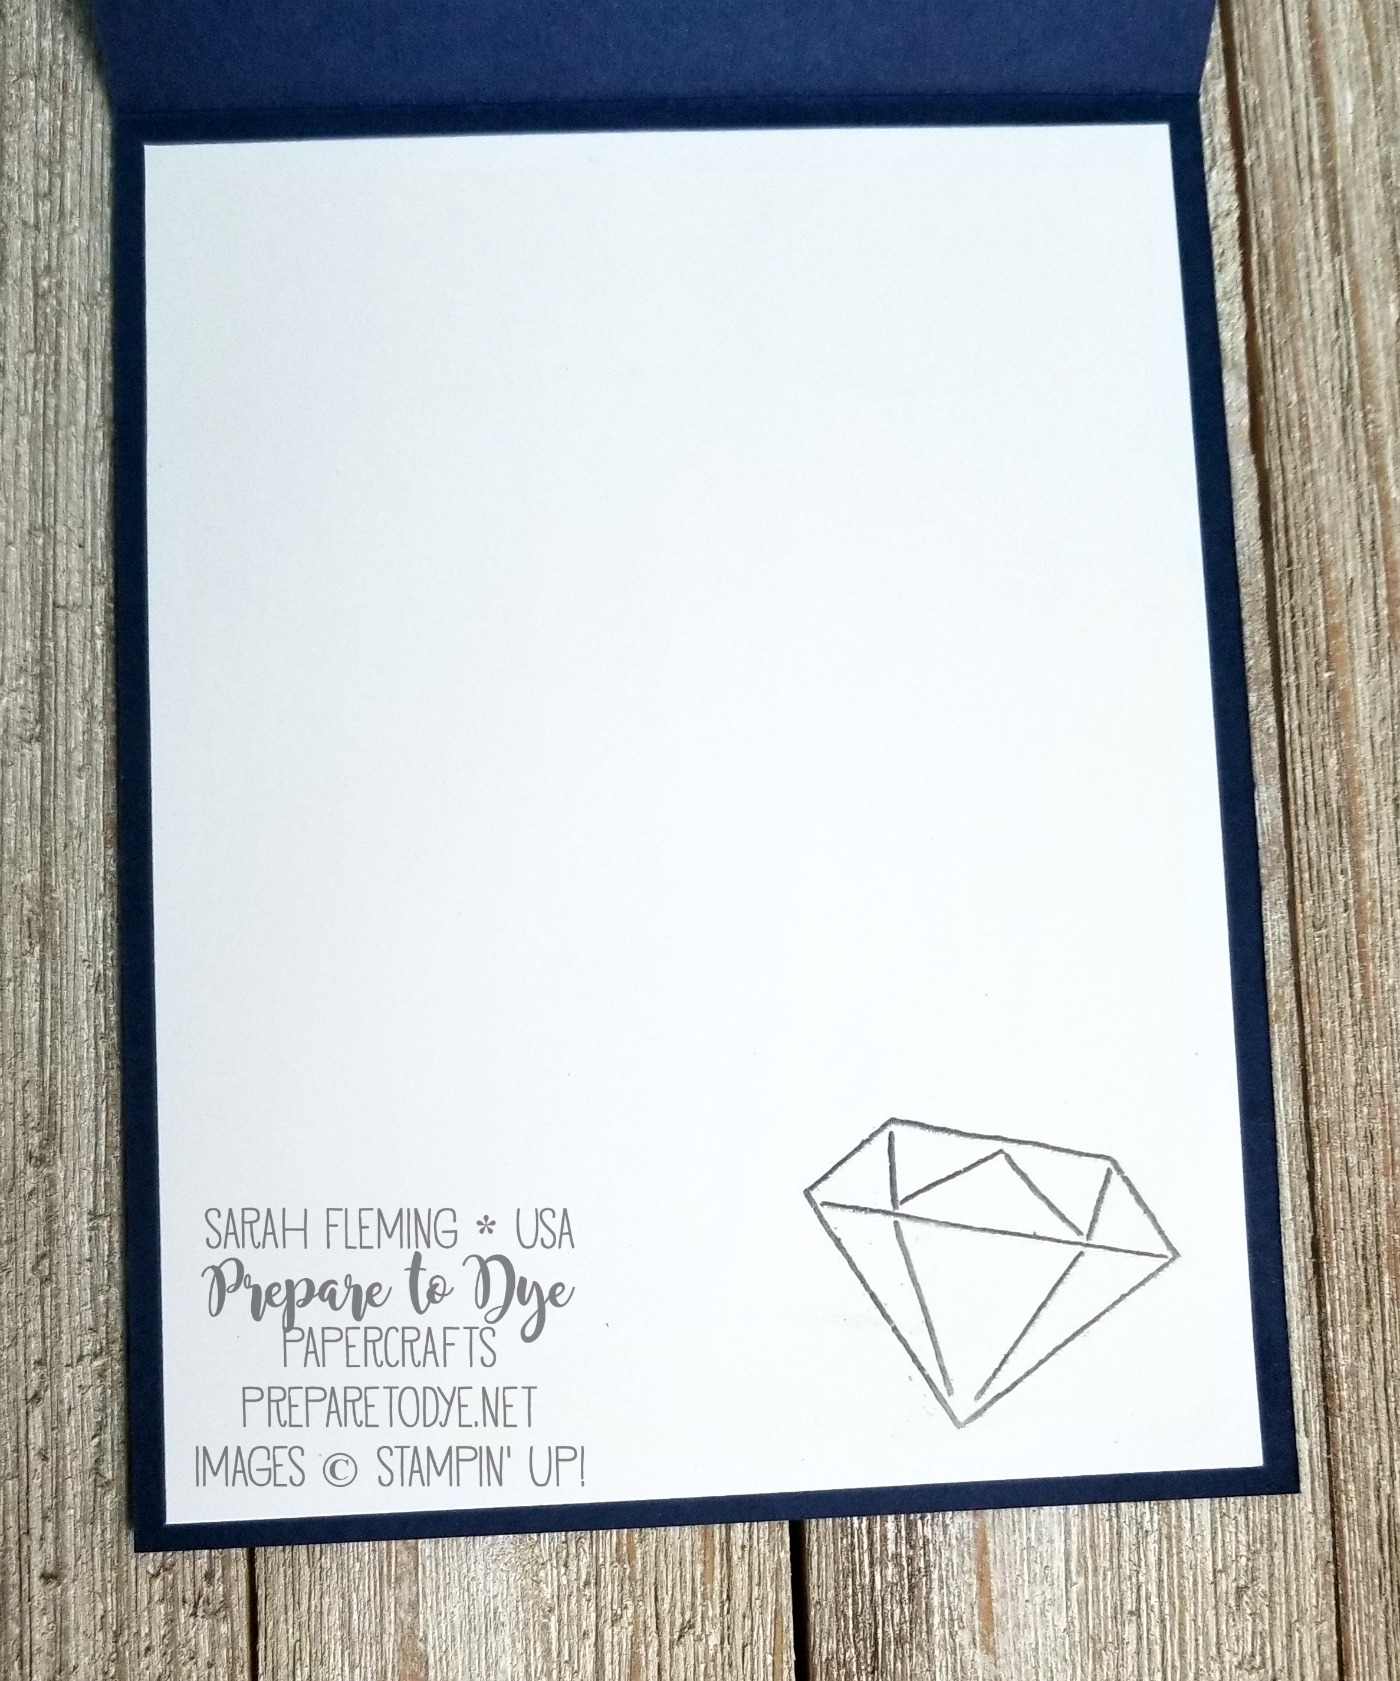 Stampin' Up! You're Priceless with Eclectic Layers Thinlits and Brusho on Glossy Cardstock - handmade friend or thank you card - Sarah Fleming - Prepare to Dye Papercrafts